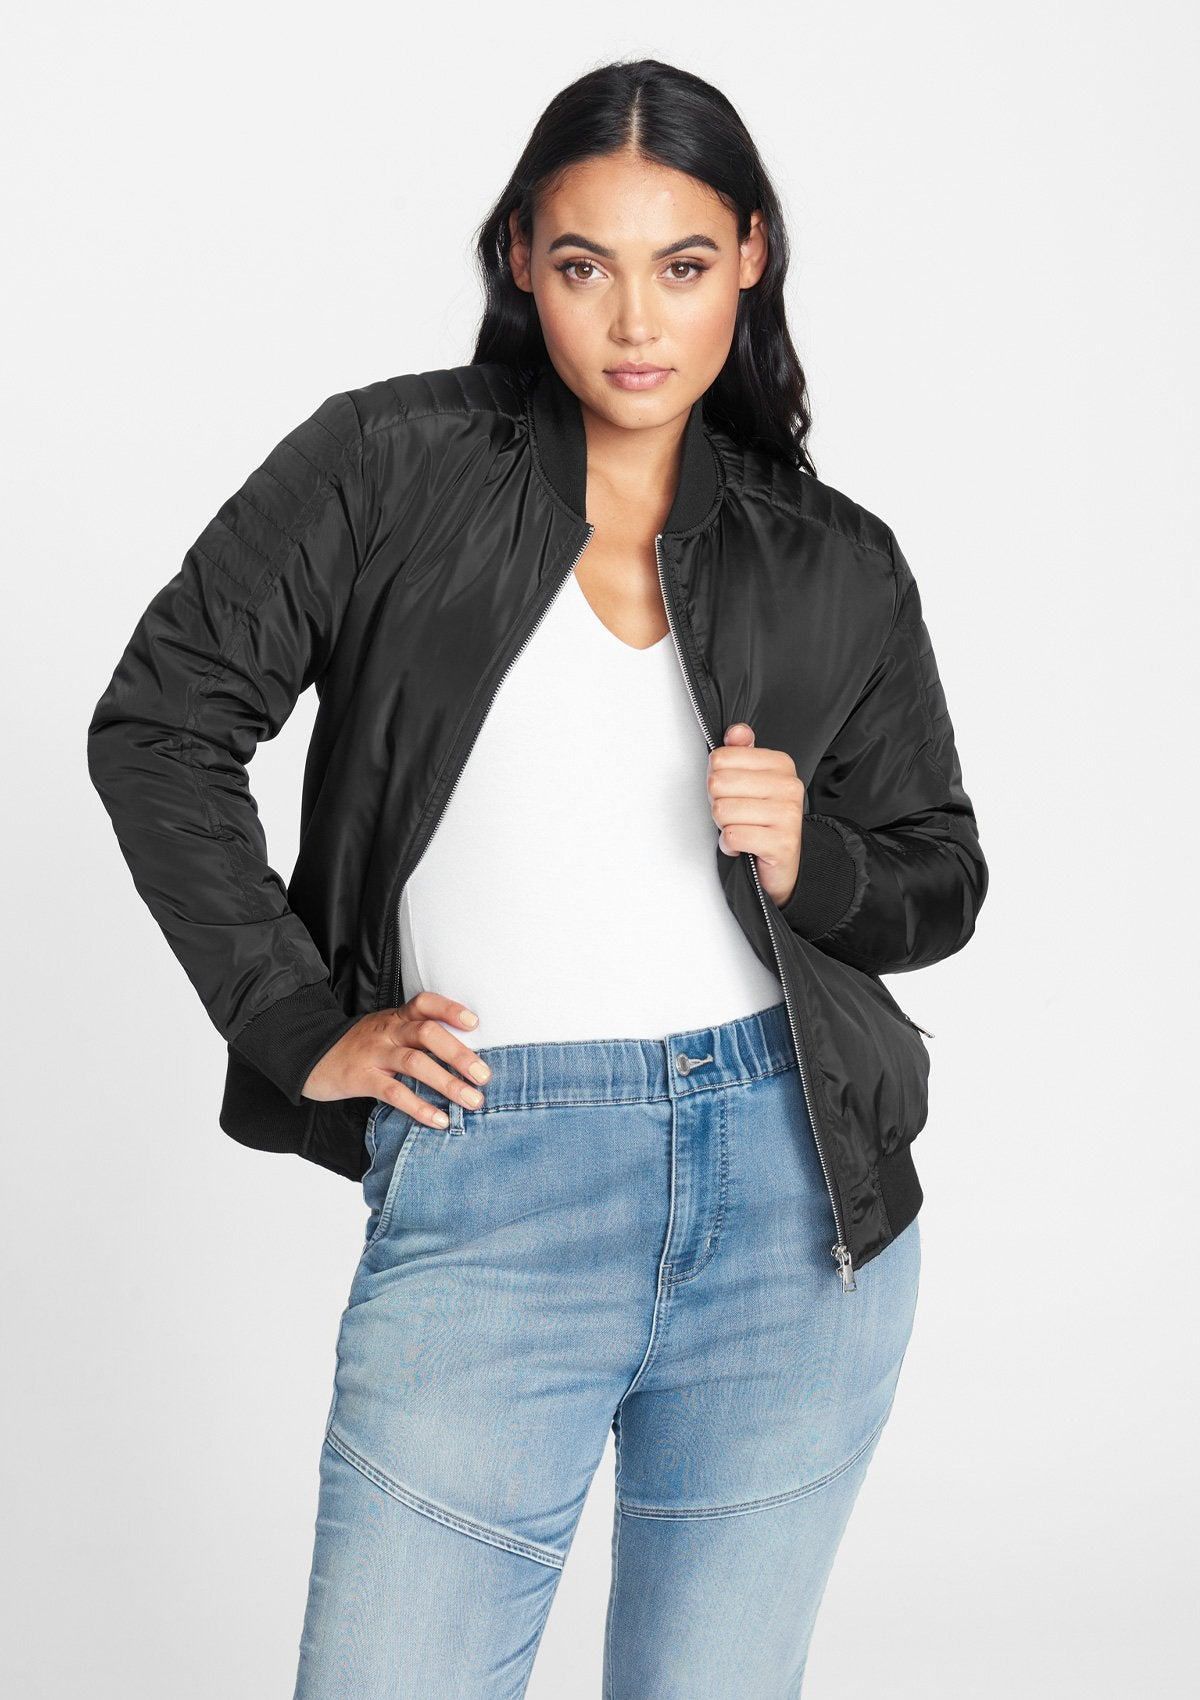 Alloy Apparel Tall Bomber Jacket for Women in Black Size S   Polyester